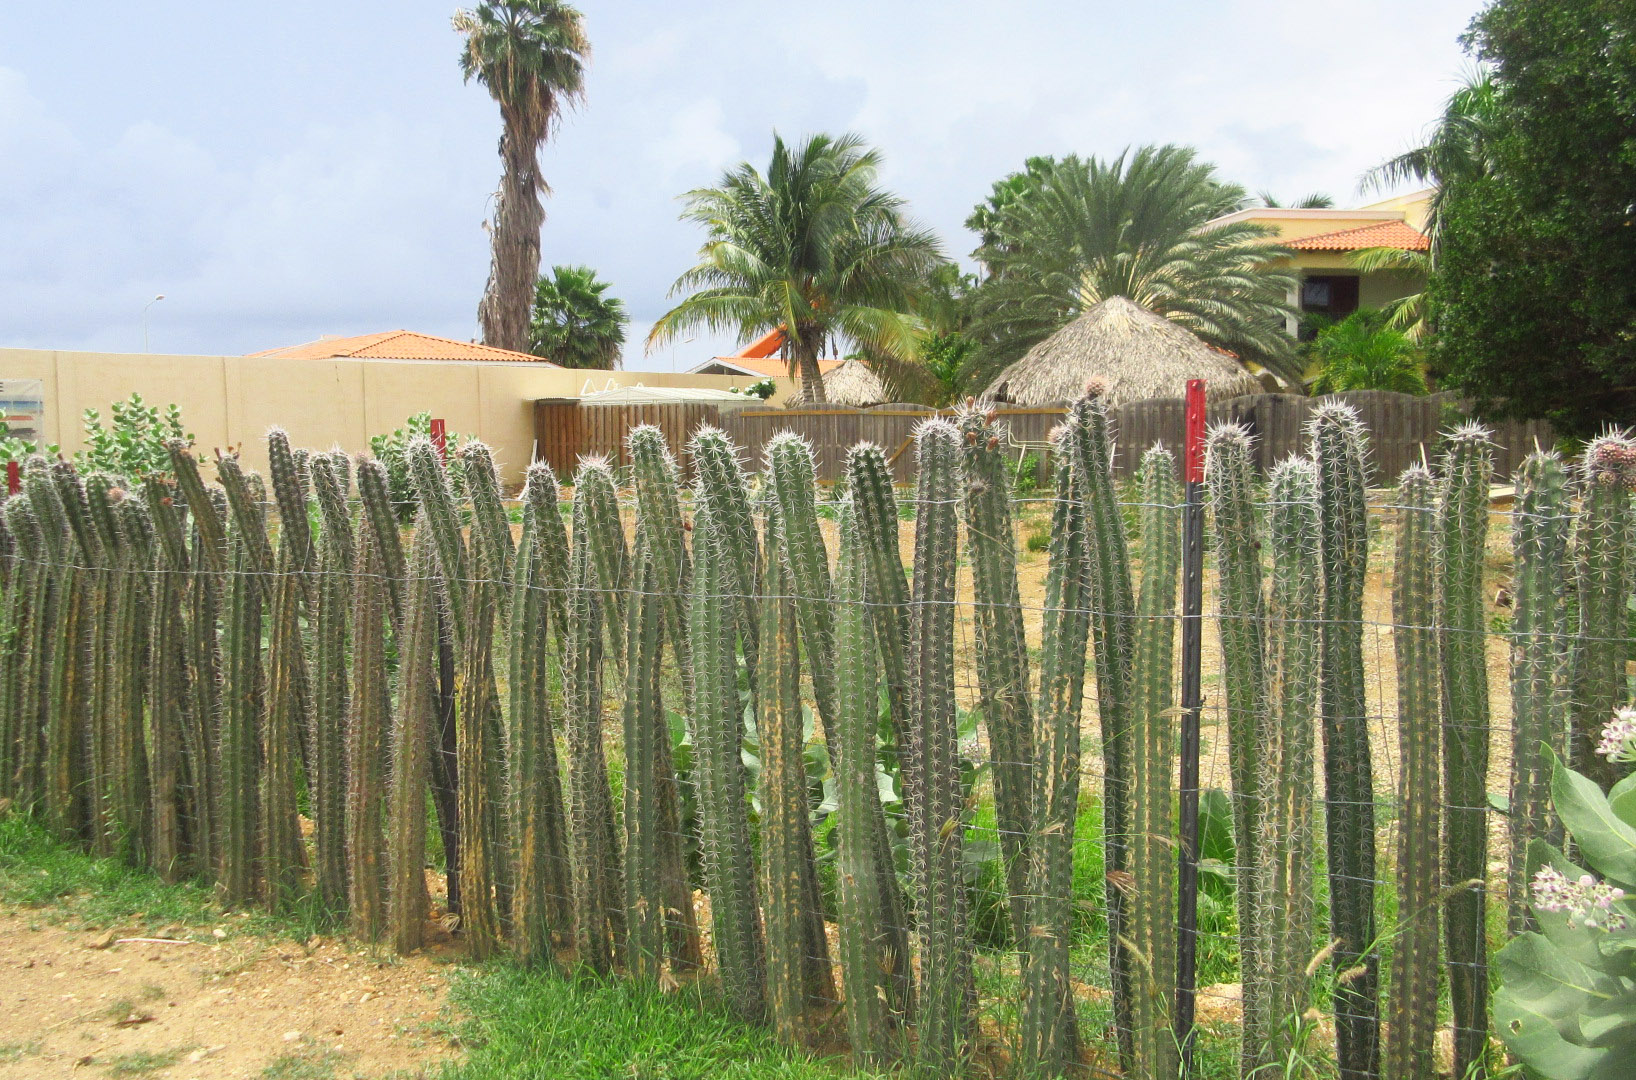 The Cactus Fence